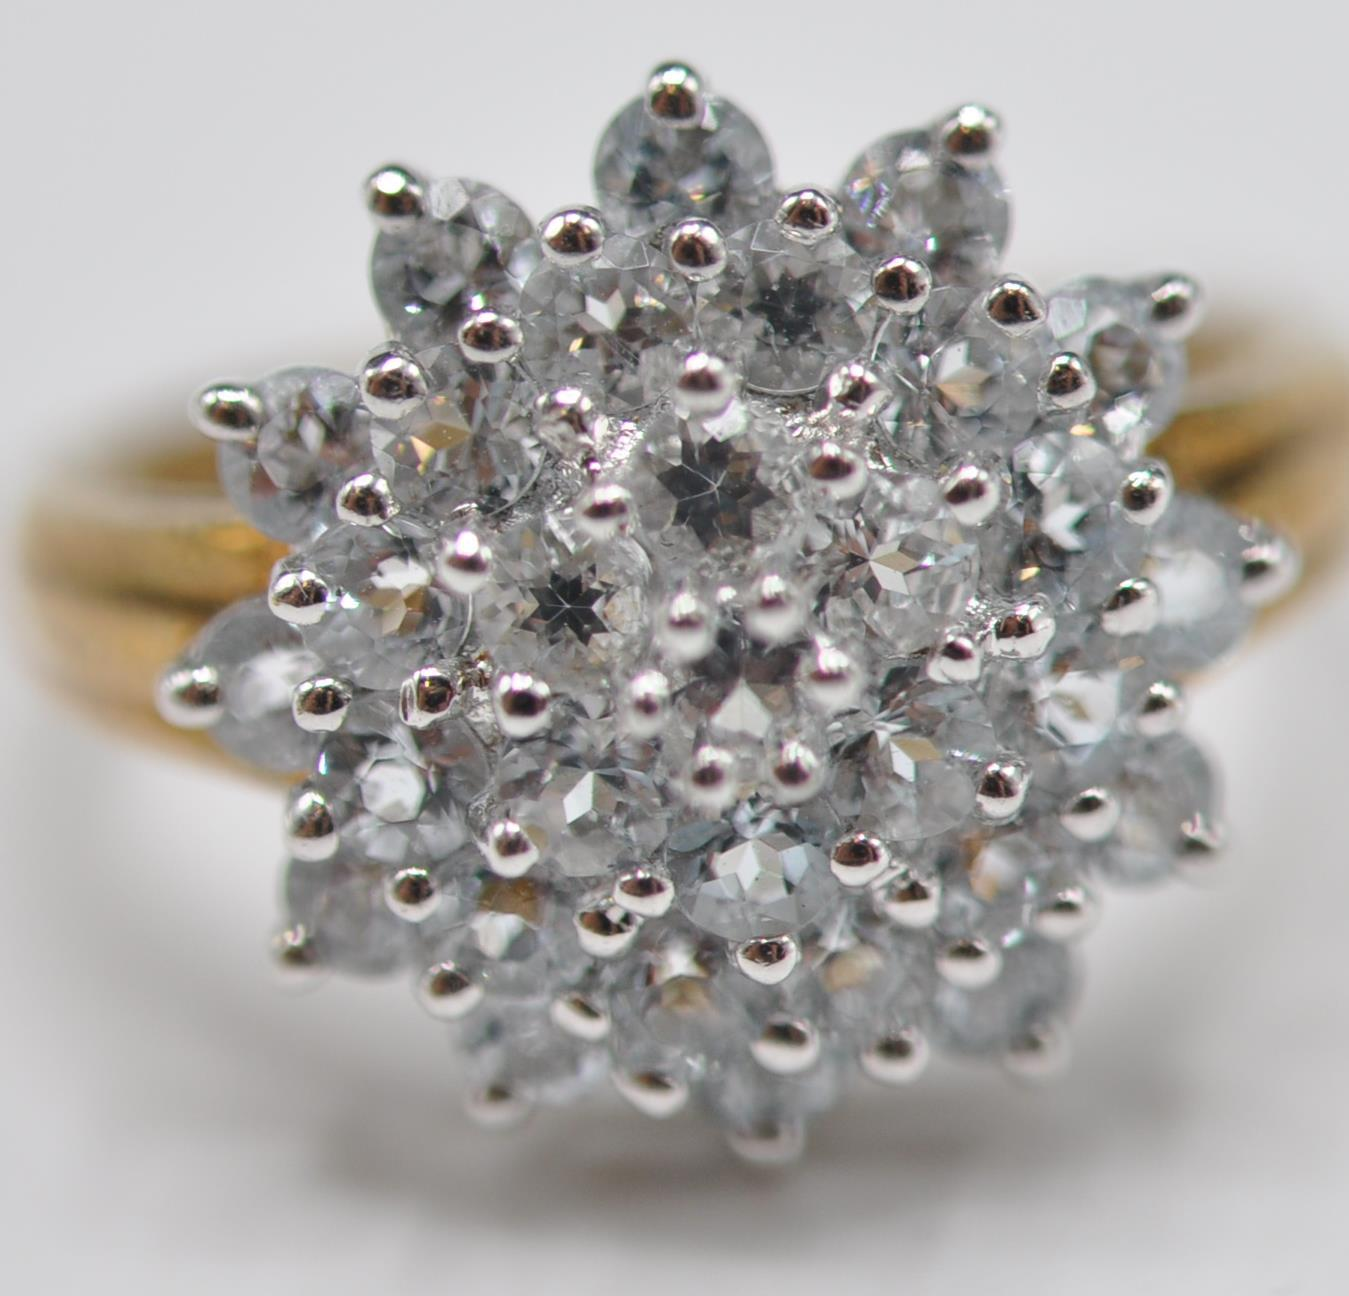 HALLMARKED 9CT GOLD AND BLUE STONE CLUSTER RING - Image 2 of 7